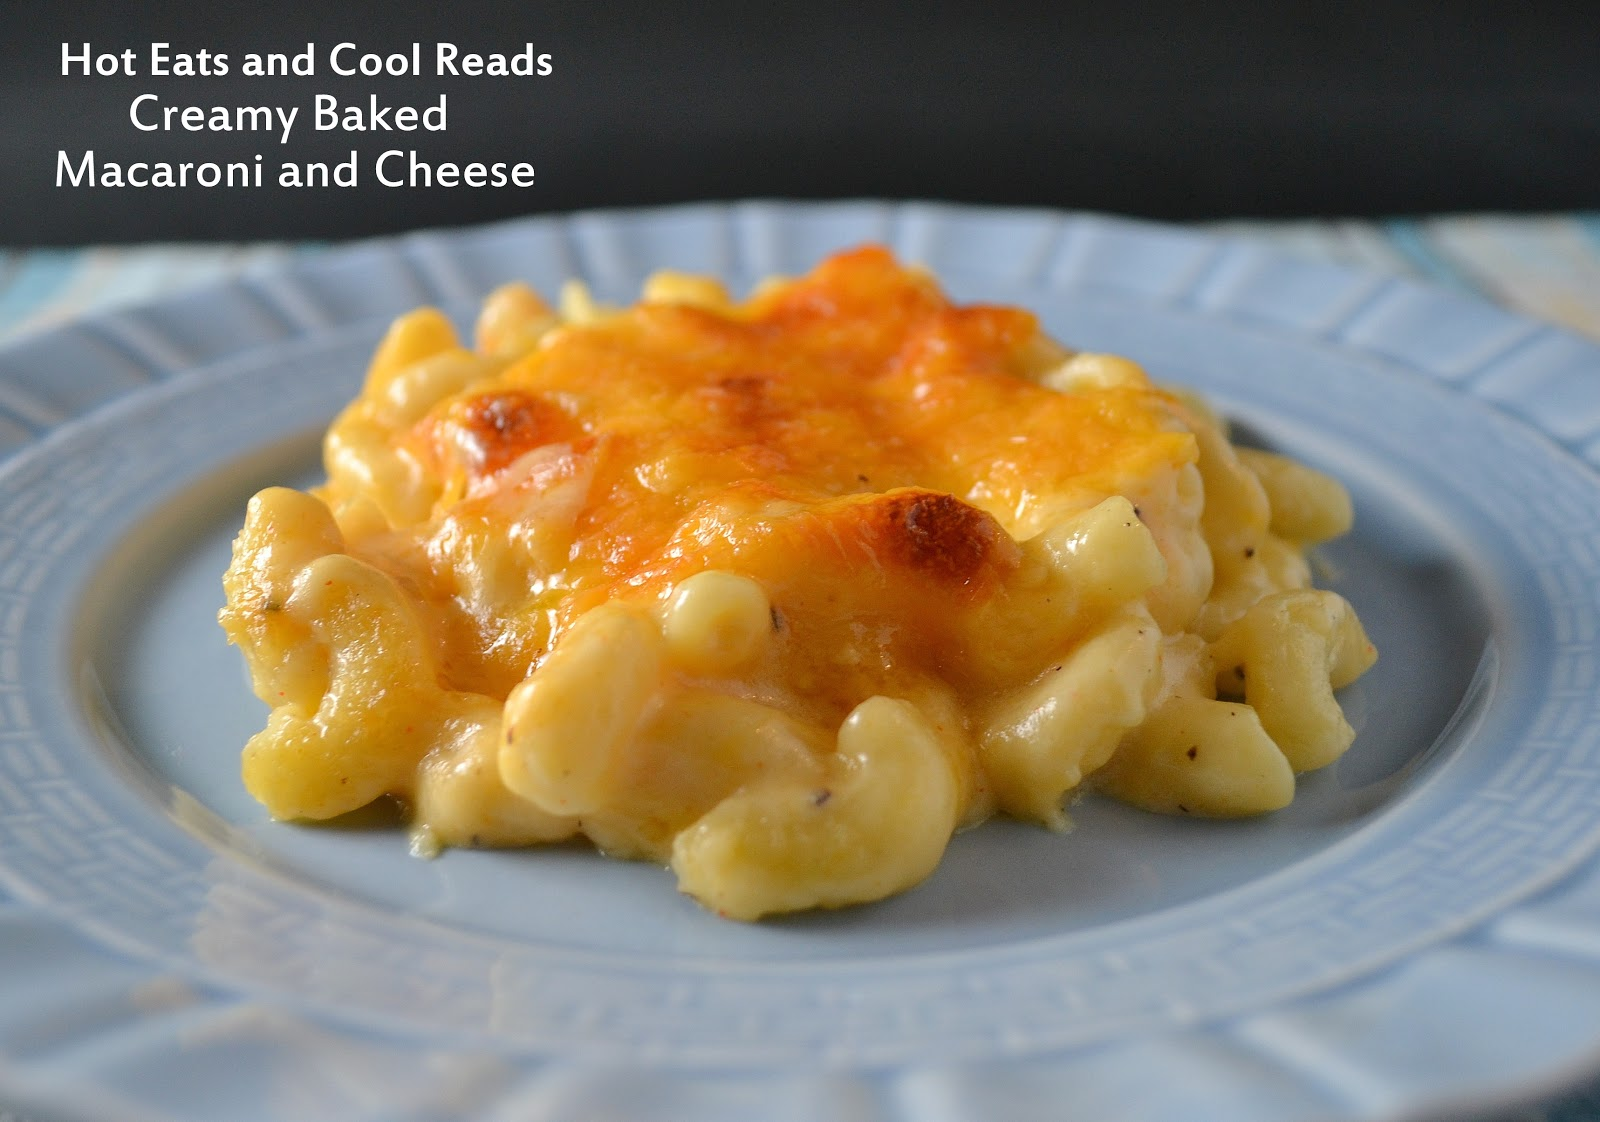 Hot Eats And Cool Reads Creamy Baked Macaroni And Cheese Recipe